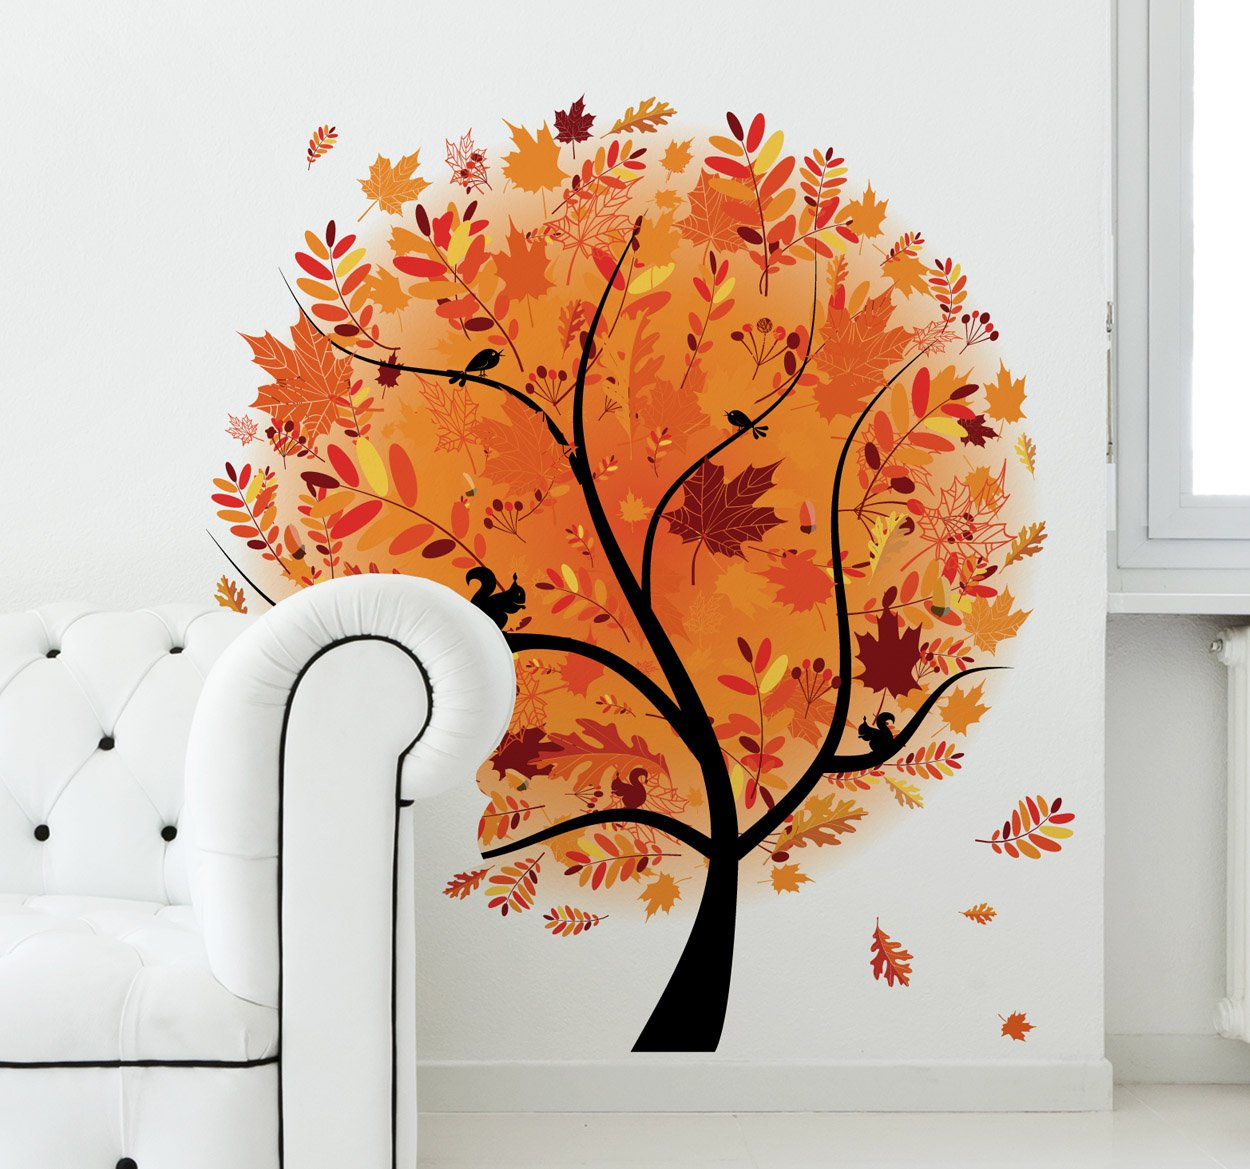 Decorazioni Per L Autunno come decorare casa in autunno: decori casa per l'autunno